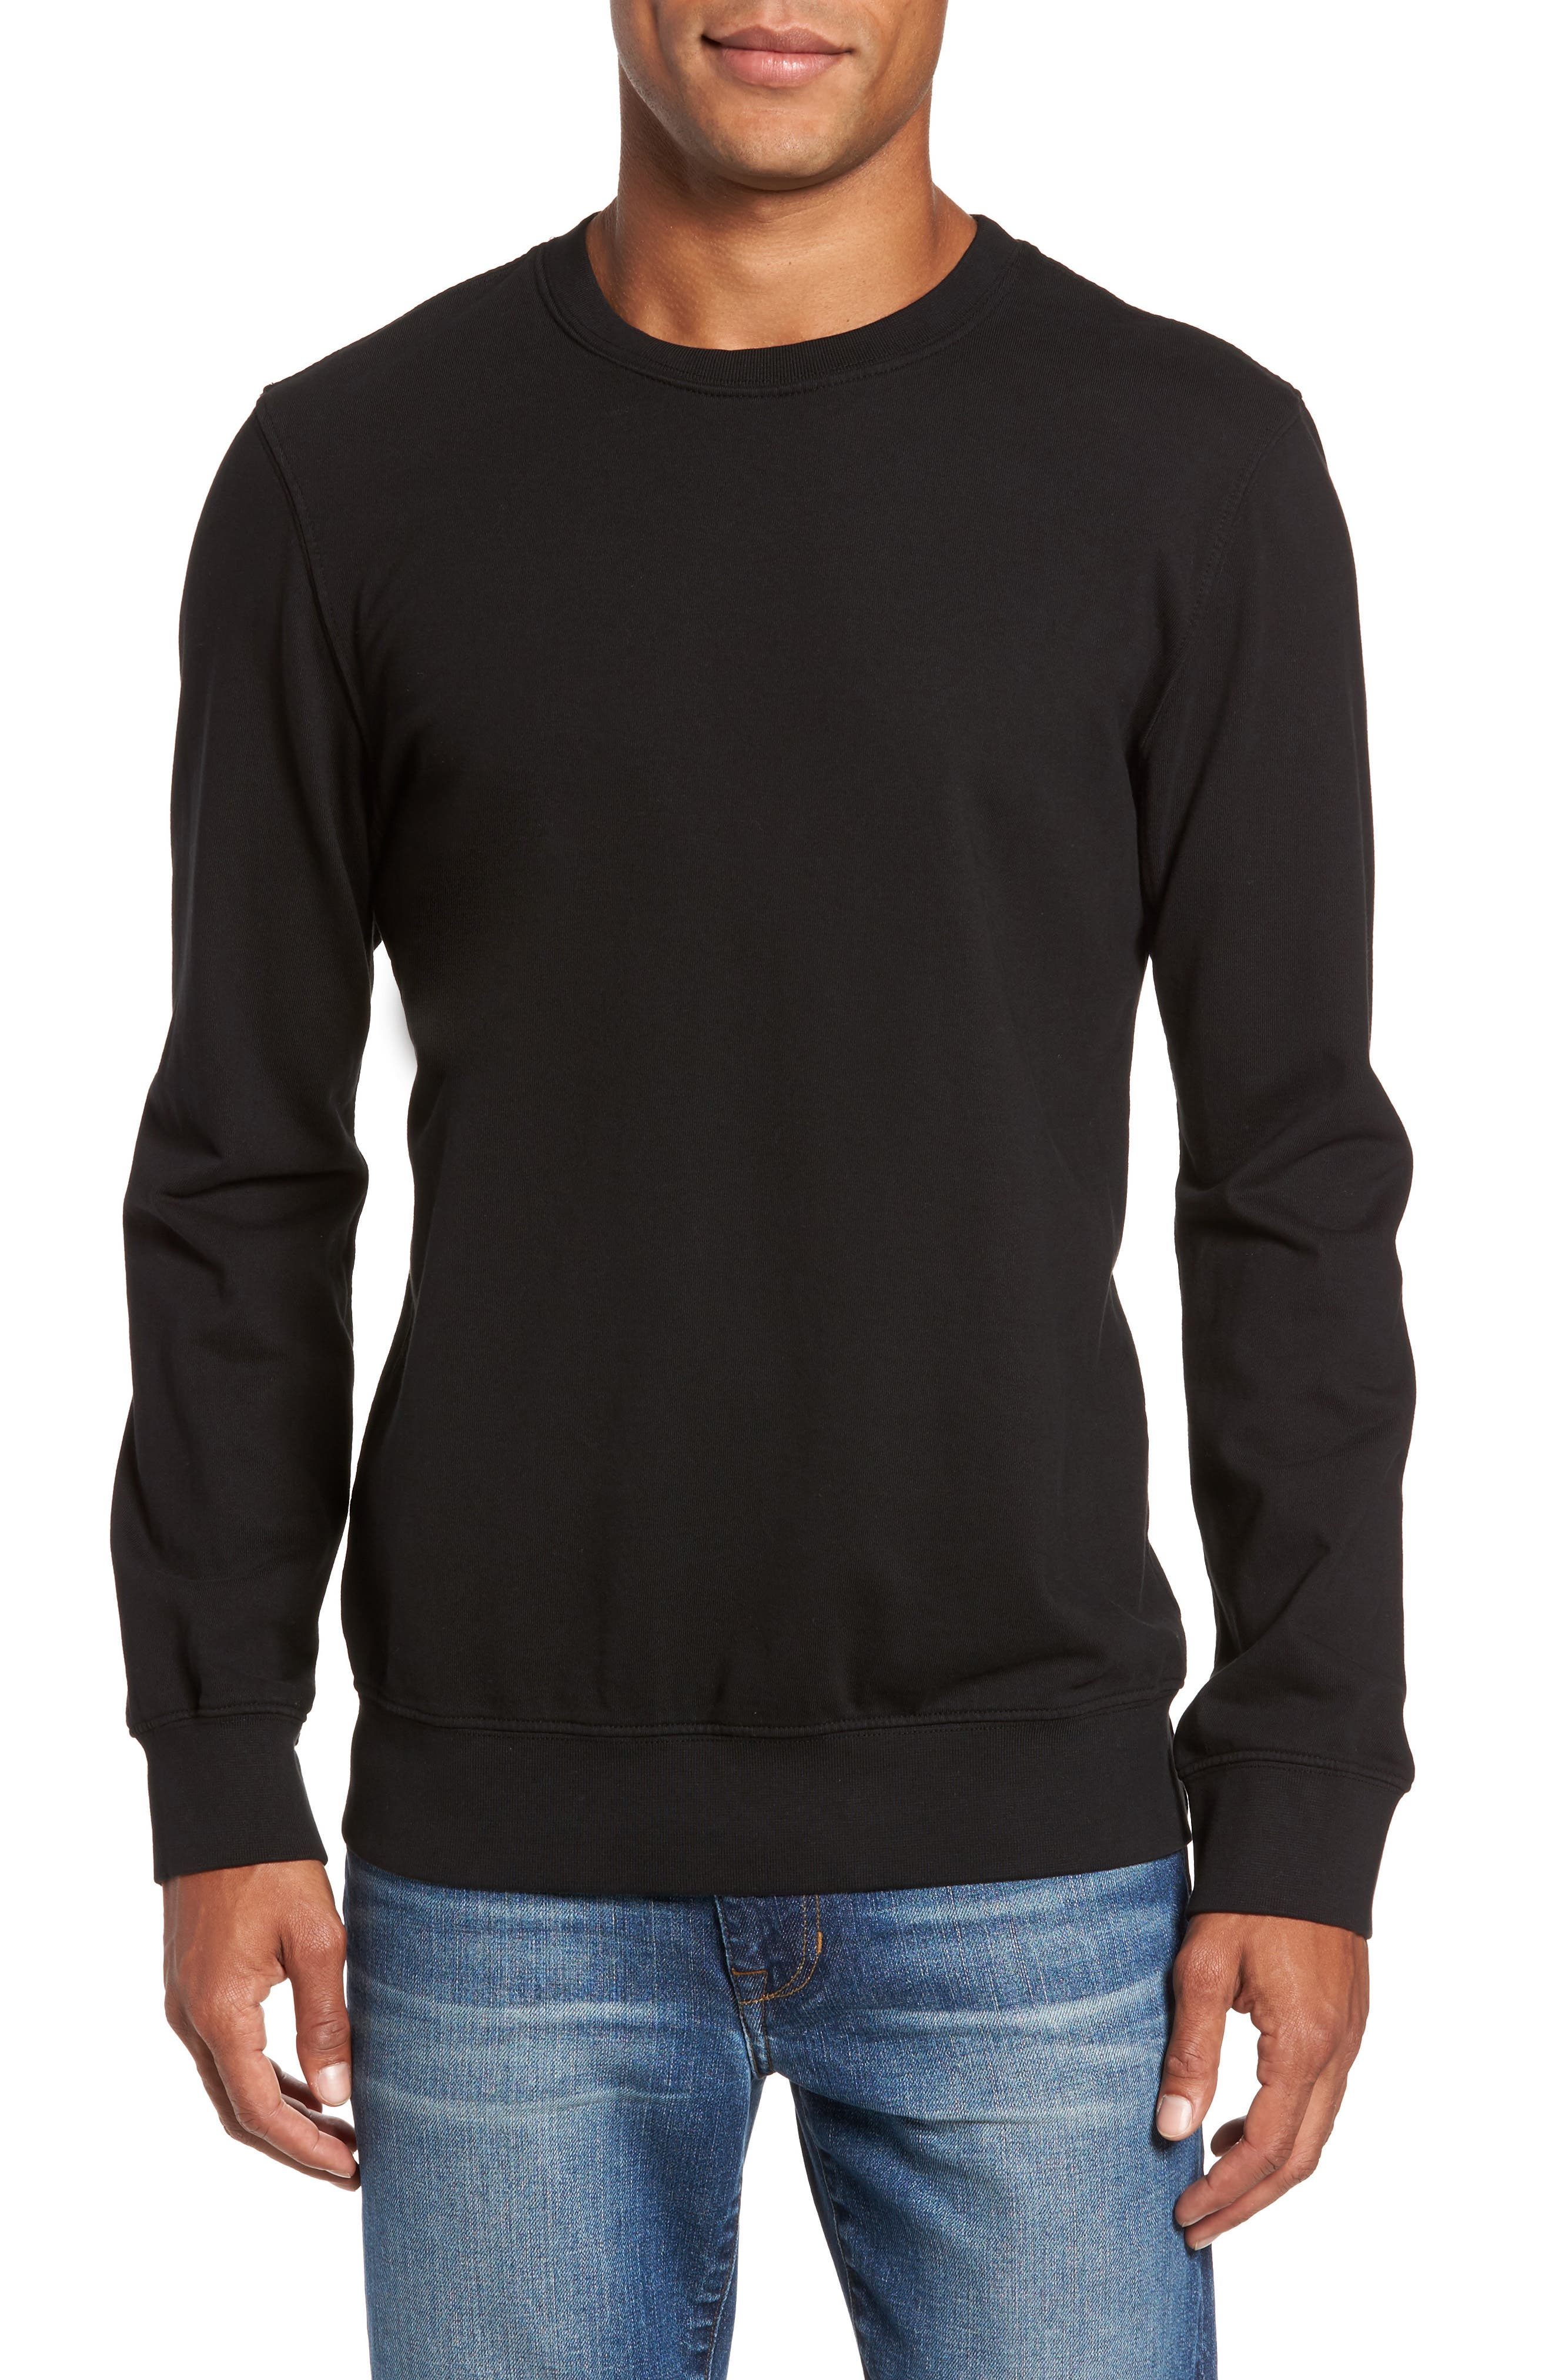 French Terry Sweatshirt,                         Main,                         color, Noir